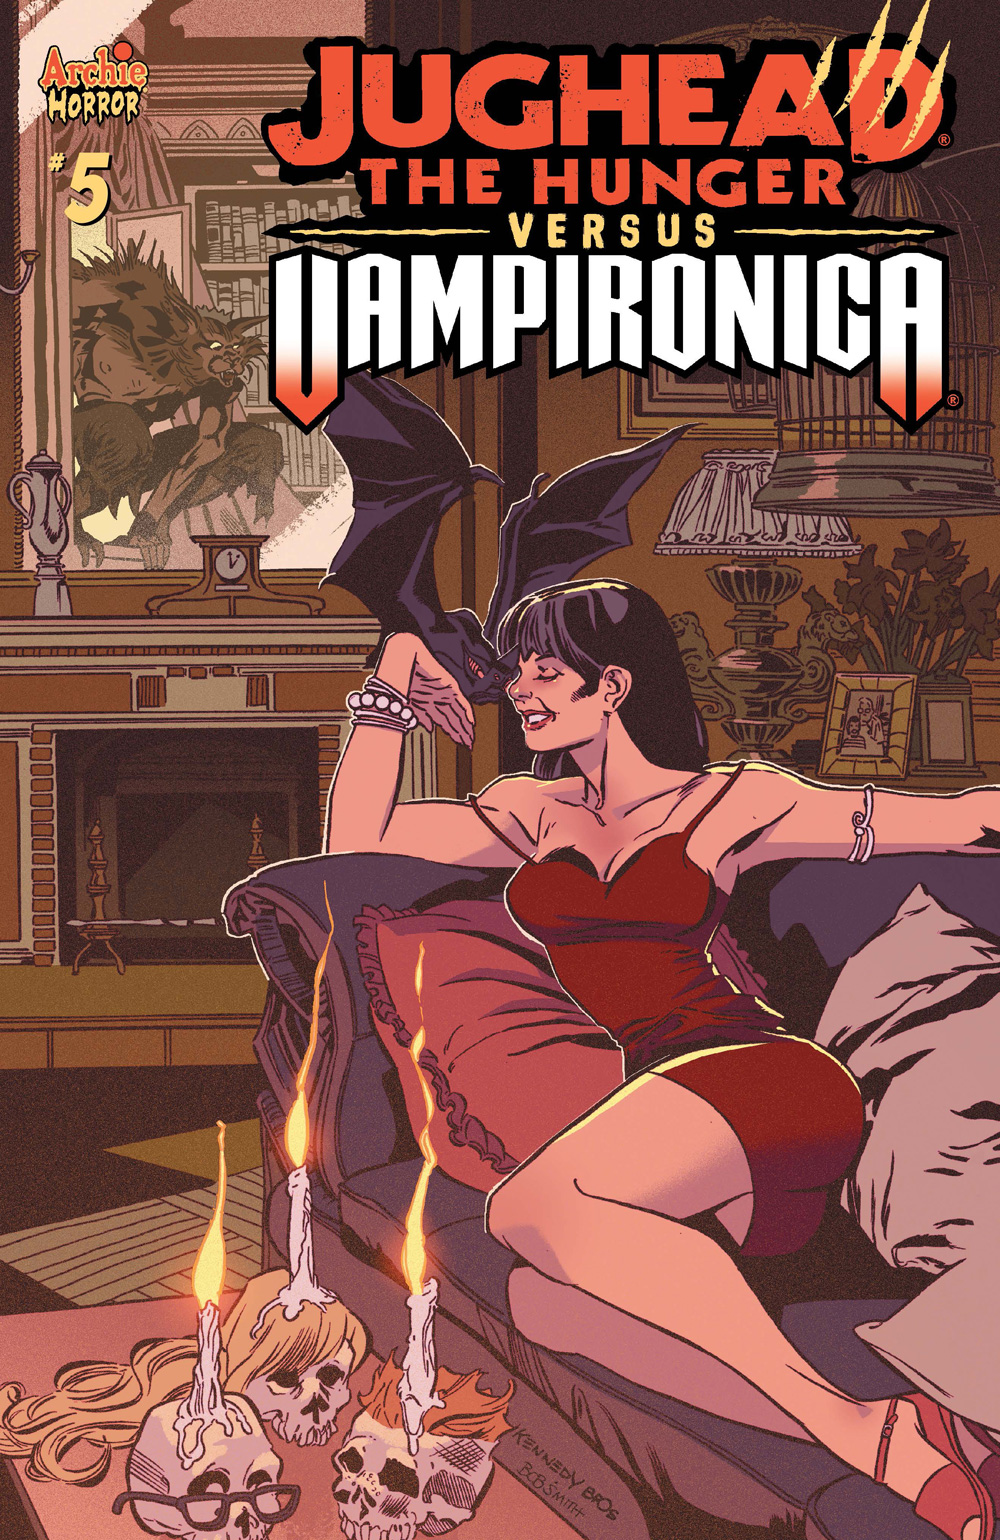 JUGHEAD THE HUNGER VS VAMPIRONICA #5: CVR A Kennedy